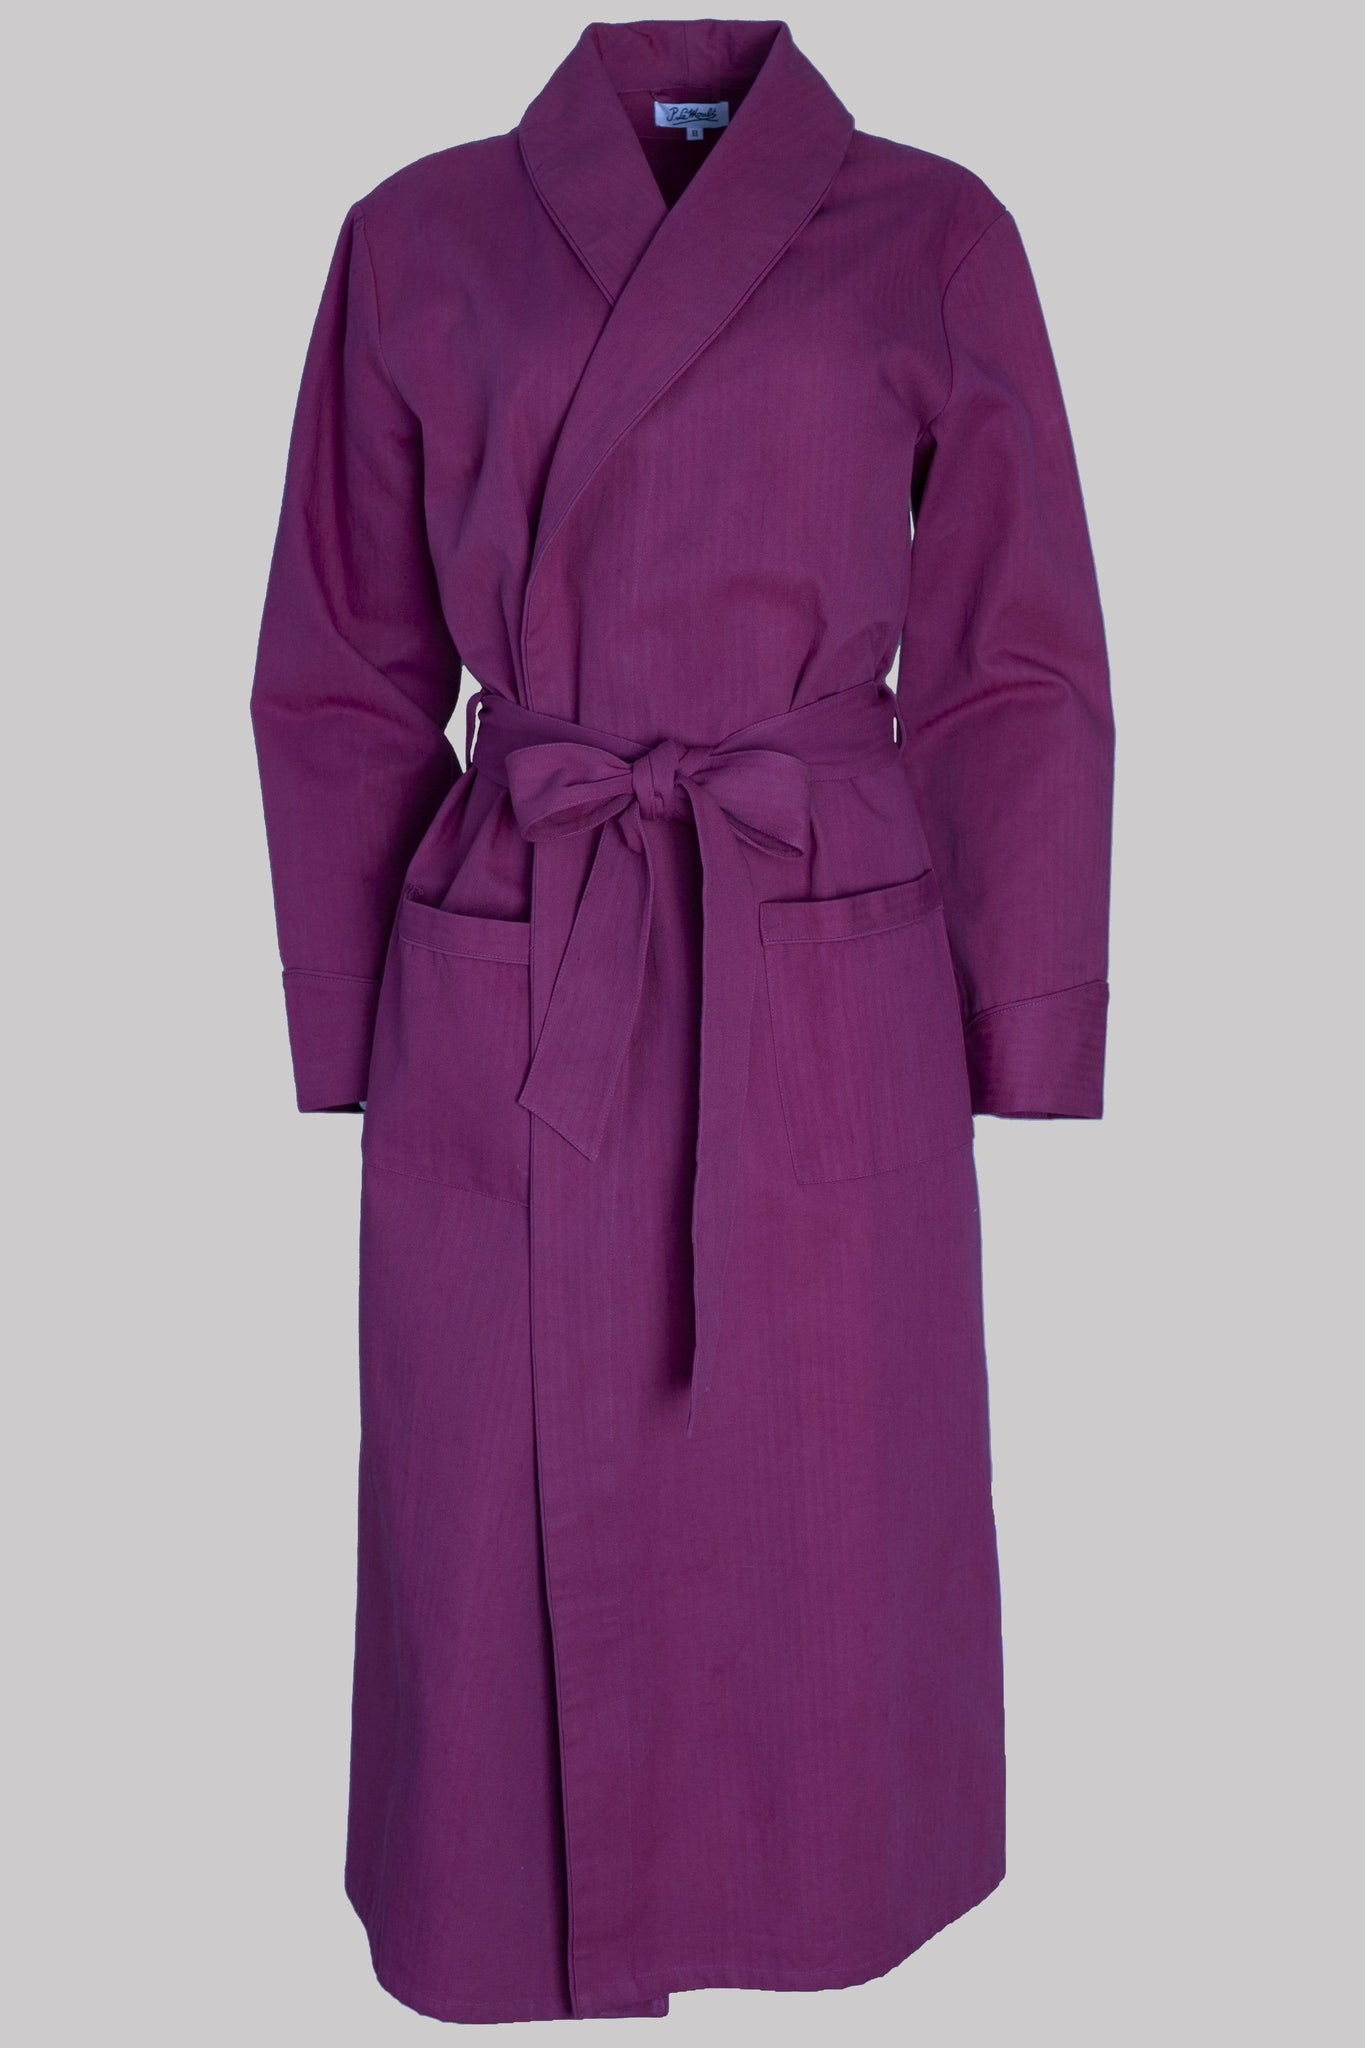 8631 DRESSING-GOWN Colour & Piping       100%ᴾᵁᴿᴱ COTTON Herringbone-THICK       BURGUNDY       Paris 1924 Olympics